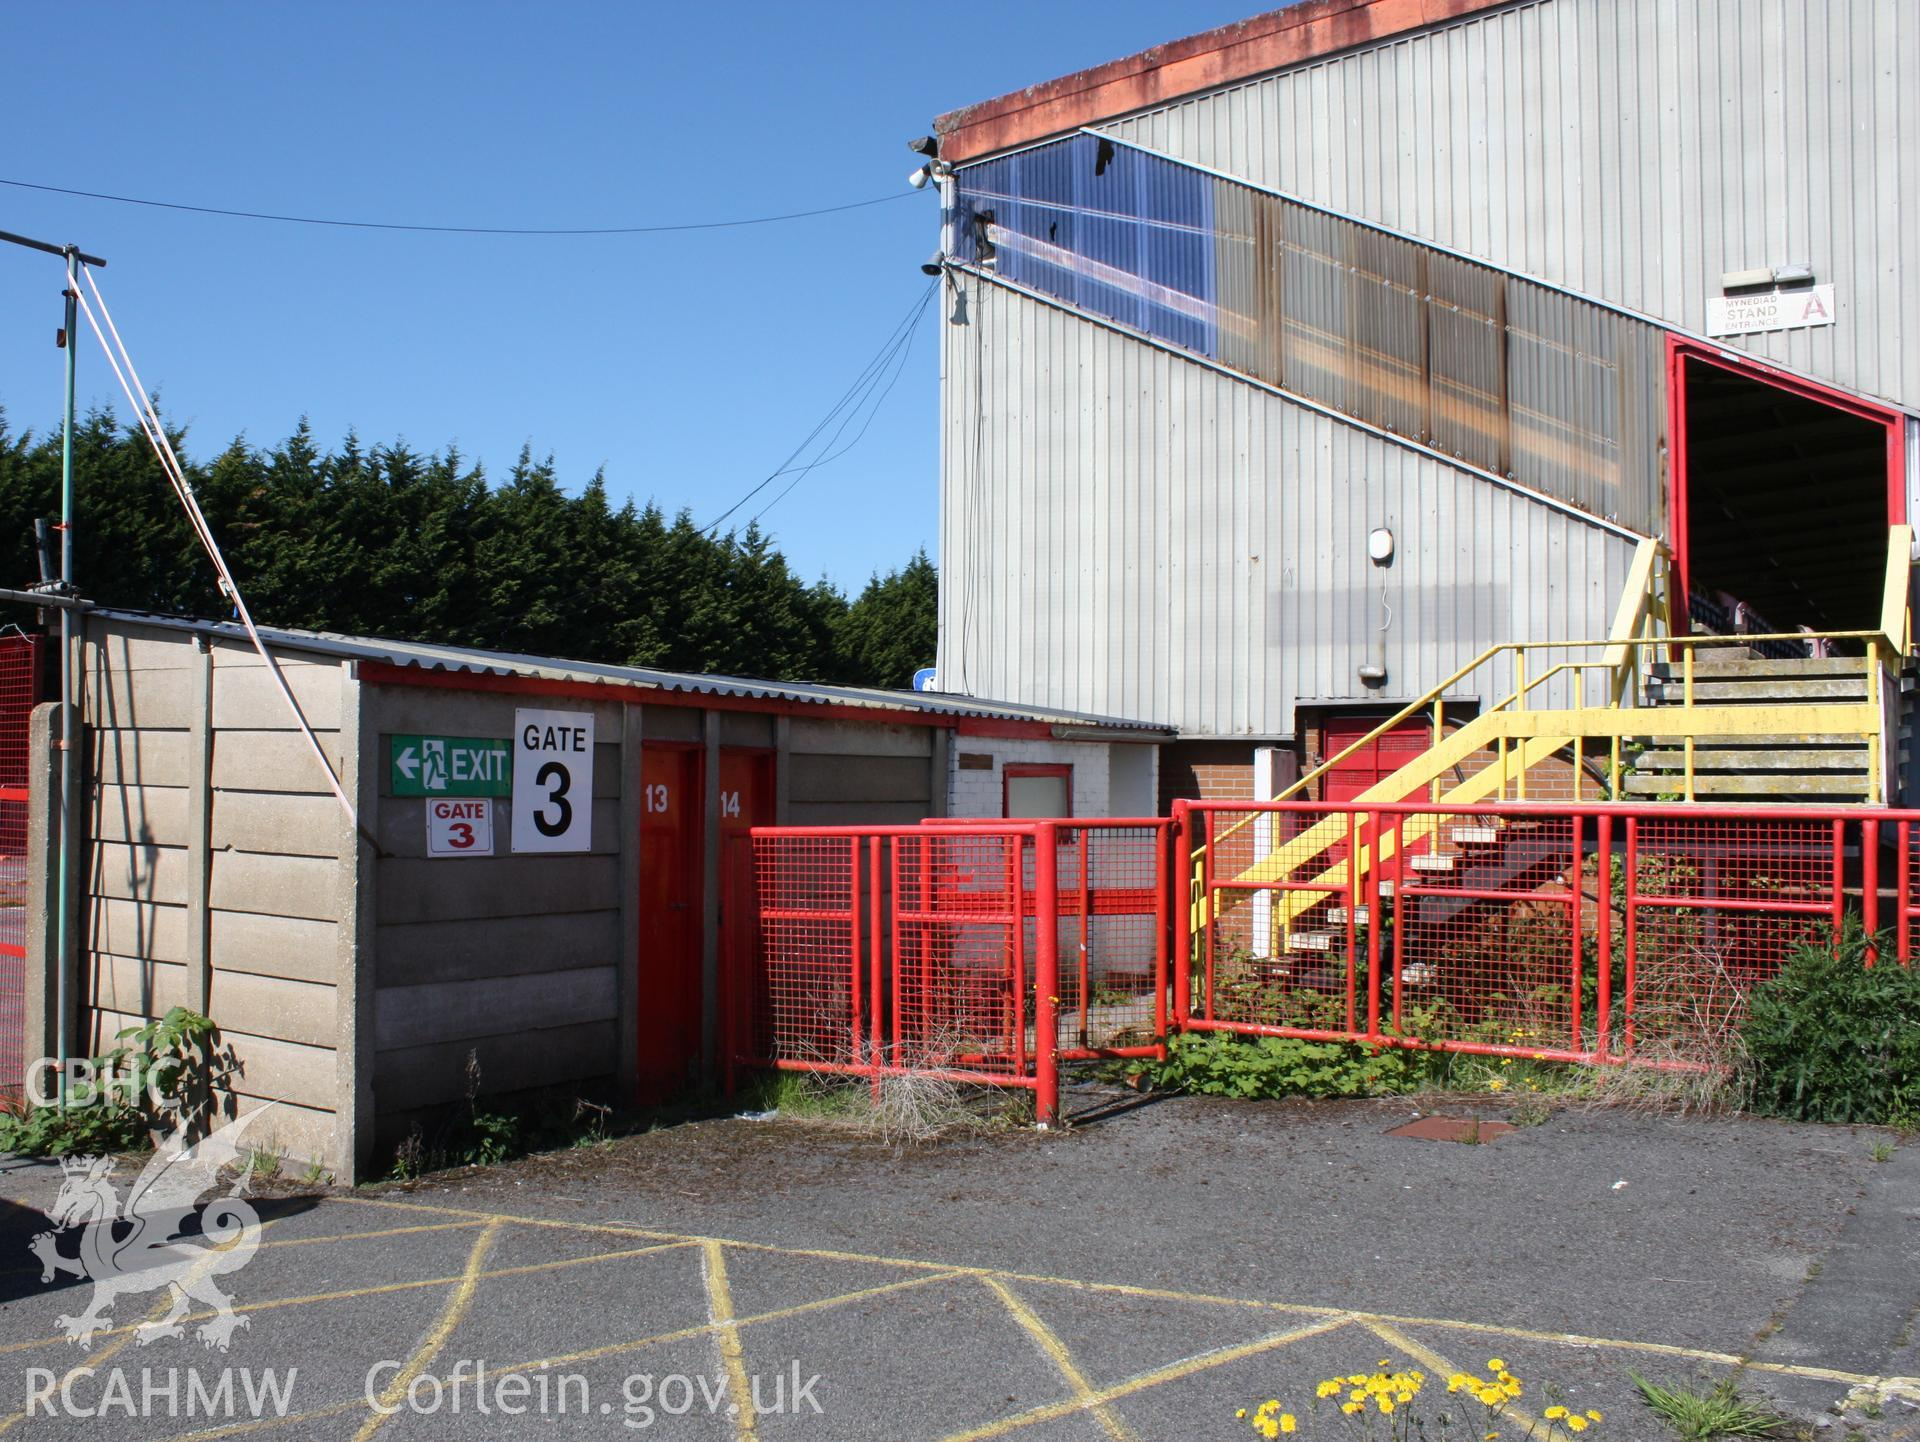 Turnstiles 13-14 and gate 3 on east side of Grand (South) stand